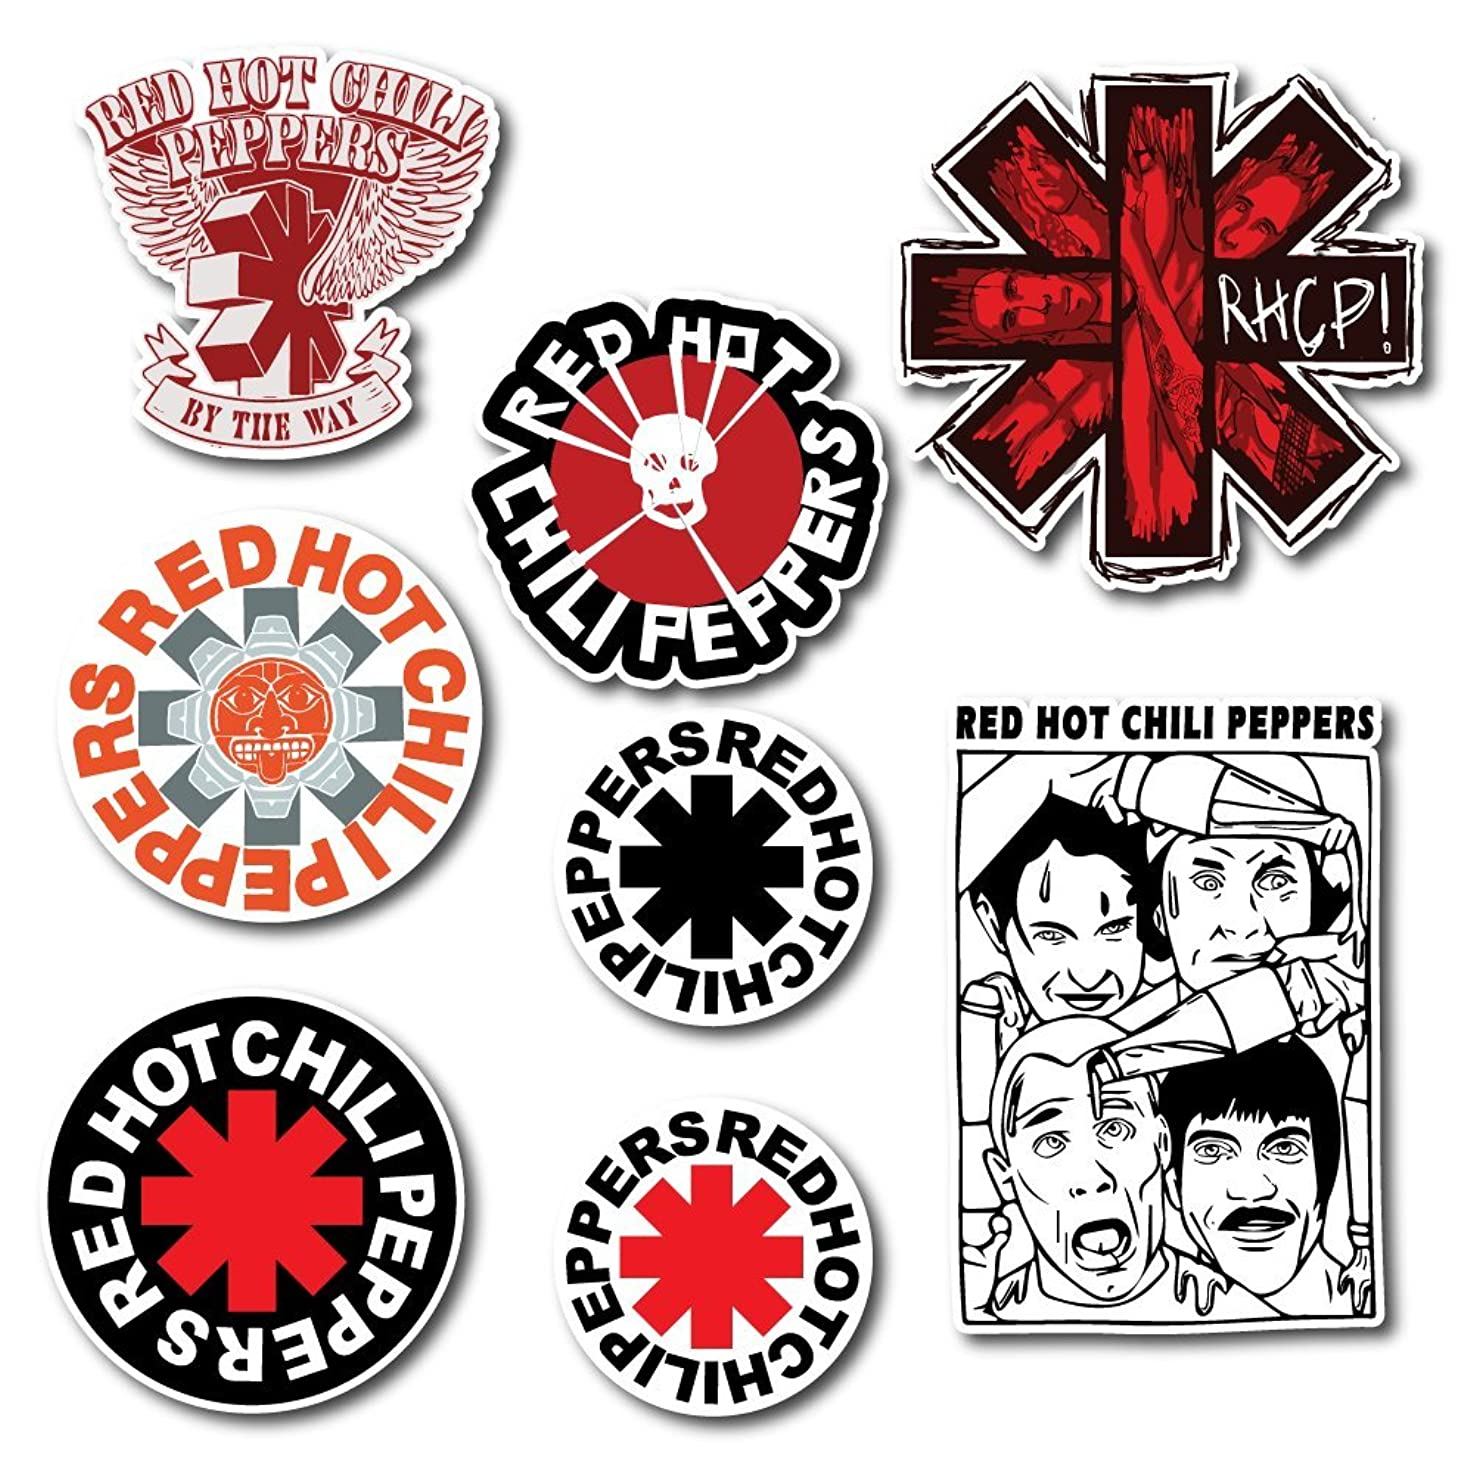 Red Hot Chili Peppers Sticker Set Pack Rock Band Decal for Car Window, Bumper, Laptop, Skateboard, Wall, ETC. Set-028